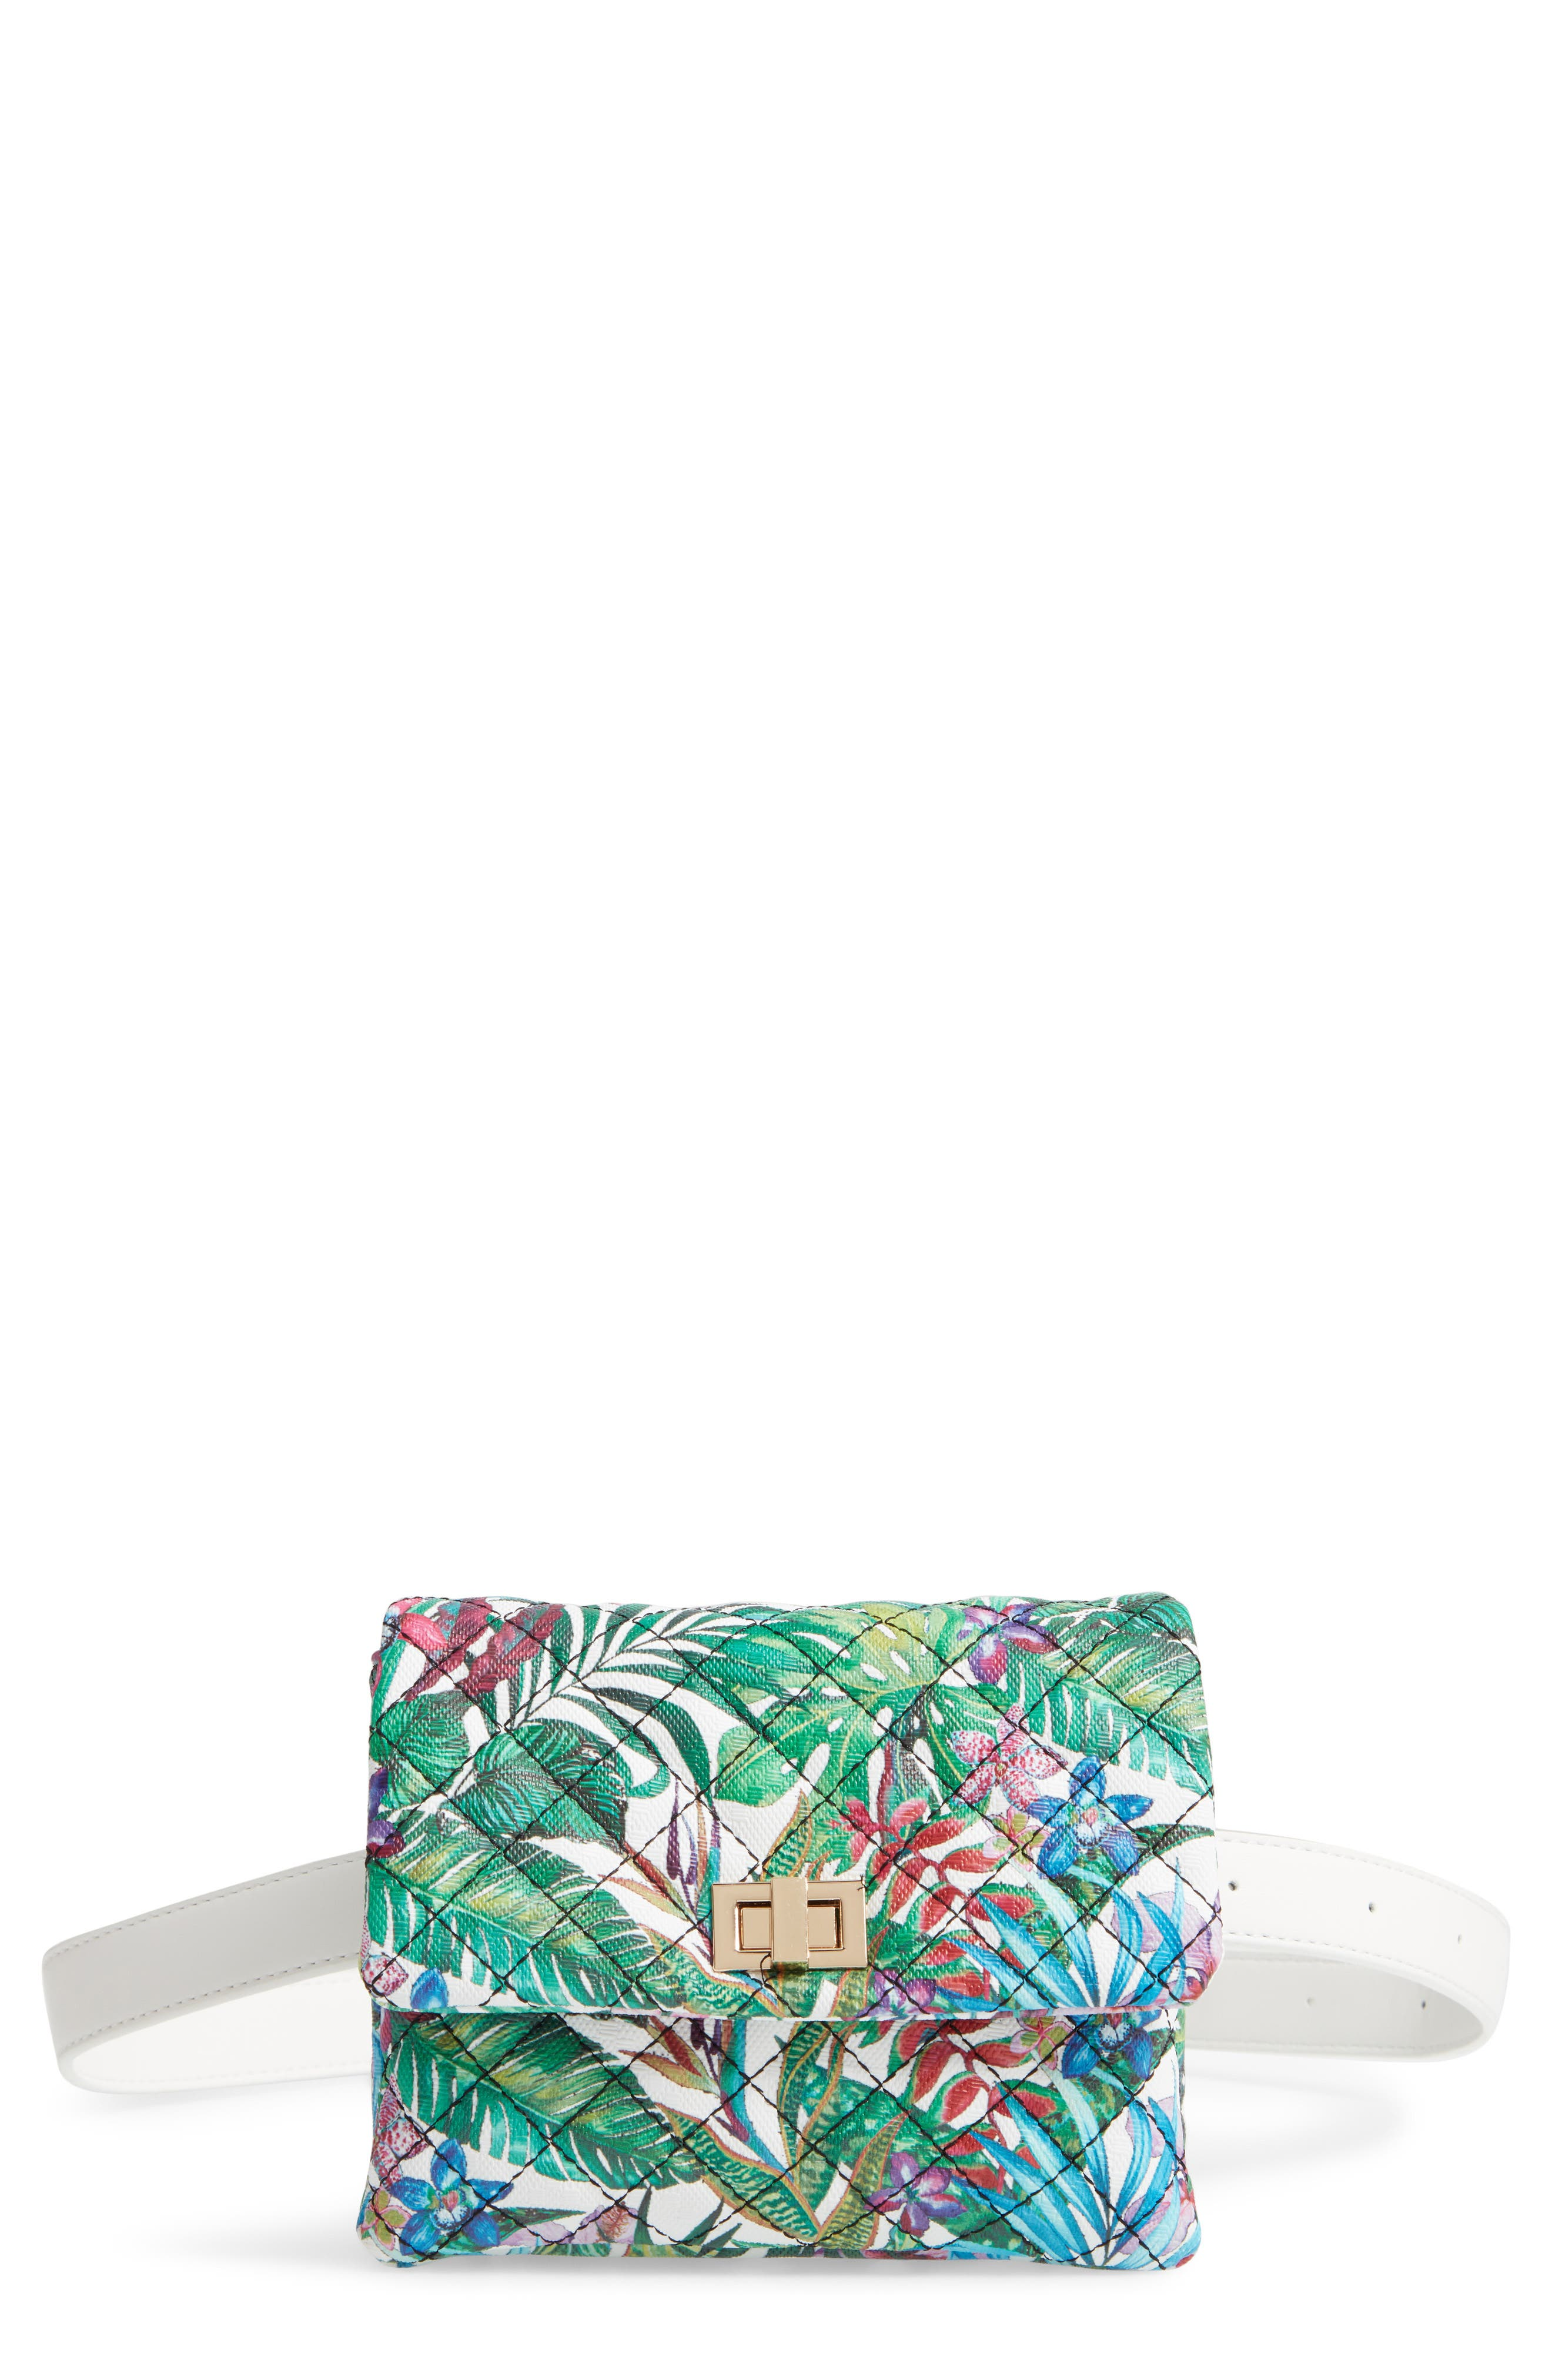 MALI + LILI,                             Quilted Vegan Leather Belt Bag,                             Main thumbnail 1, color,                             101